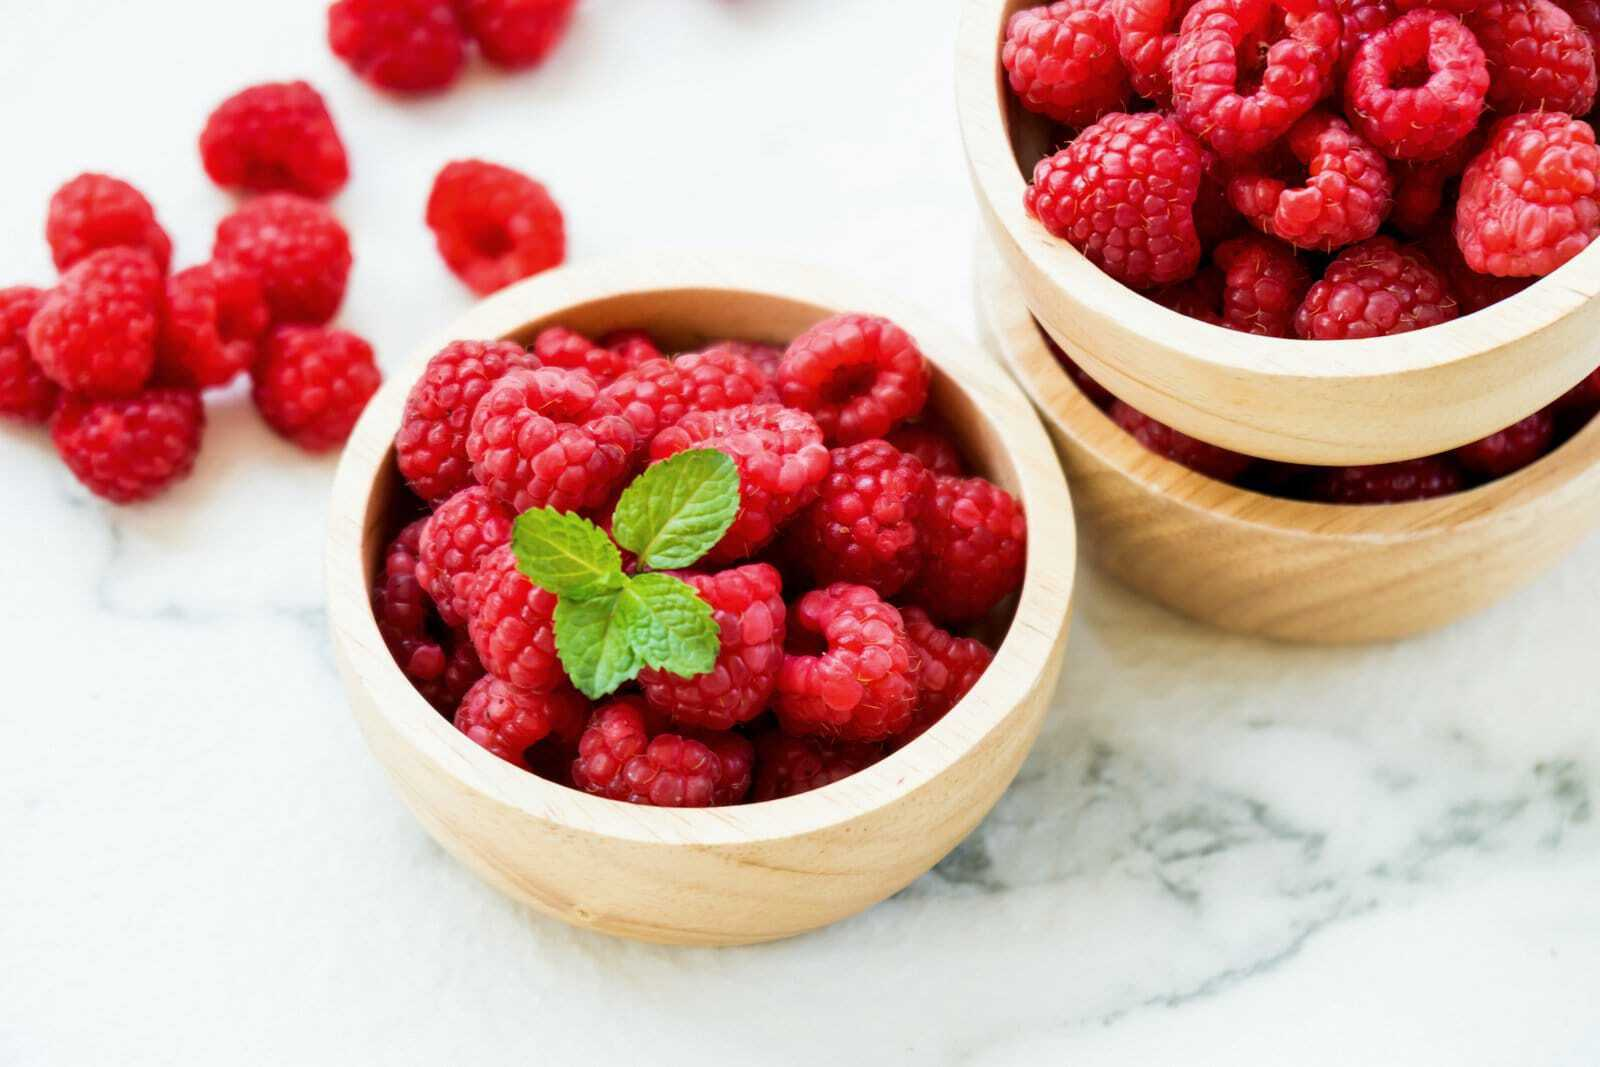 A simple recipe for making jelly from raspberries for the winter